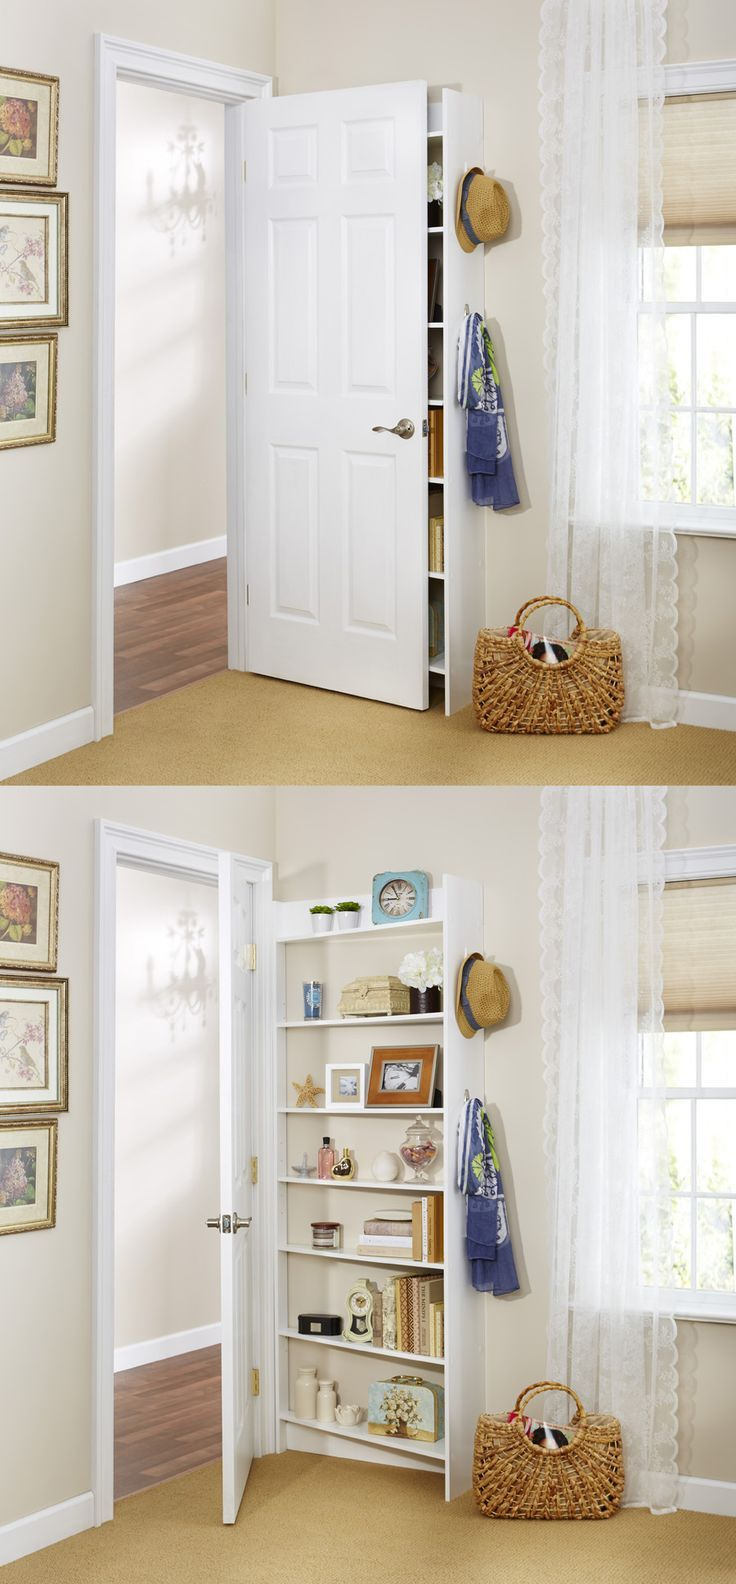 Storage Ideas For Small Bedrooms How To Make Your Small Bedroom Seem Bigger And More Organized In 2020 Small Space Bedroom Small Bedroom Storage Small Bedroom Furniture